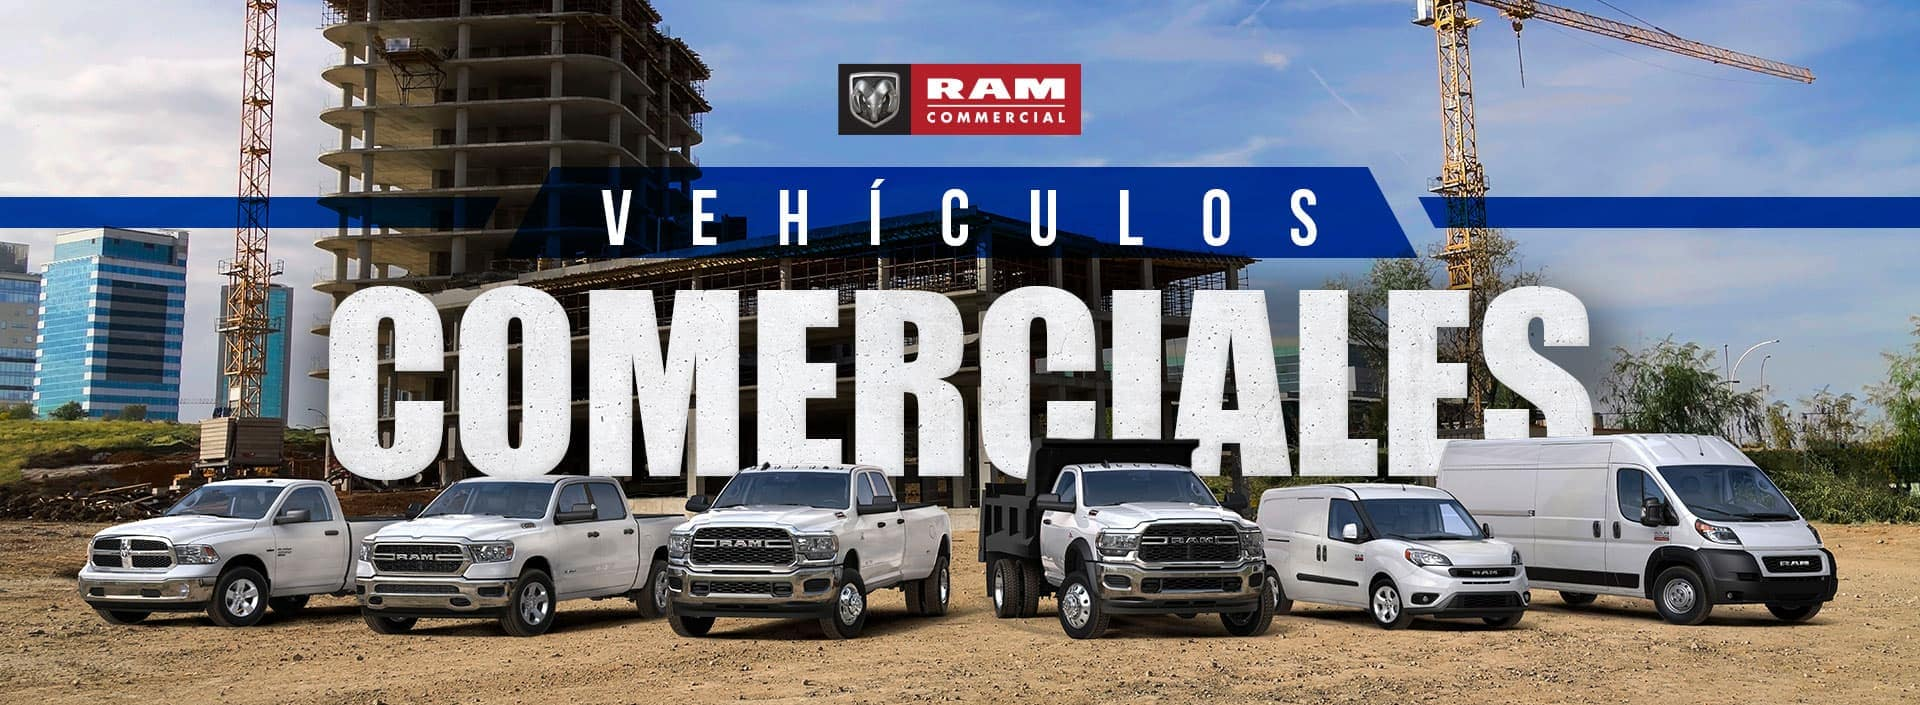 Commercial Vehicles Banner